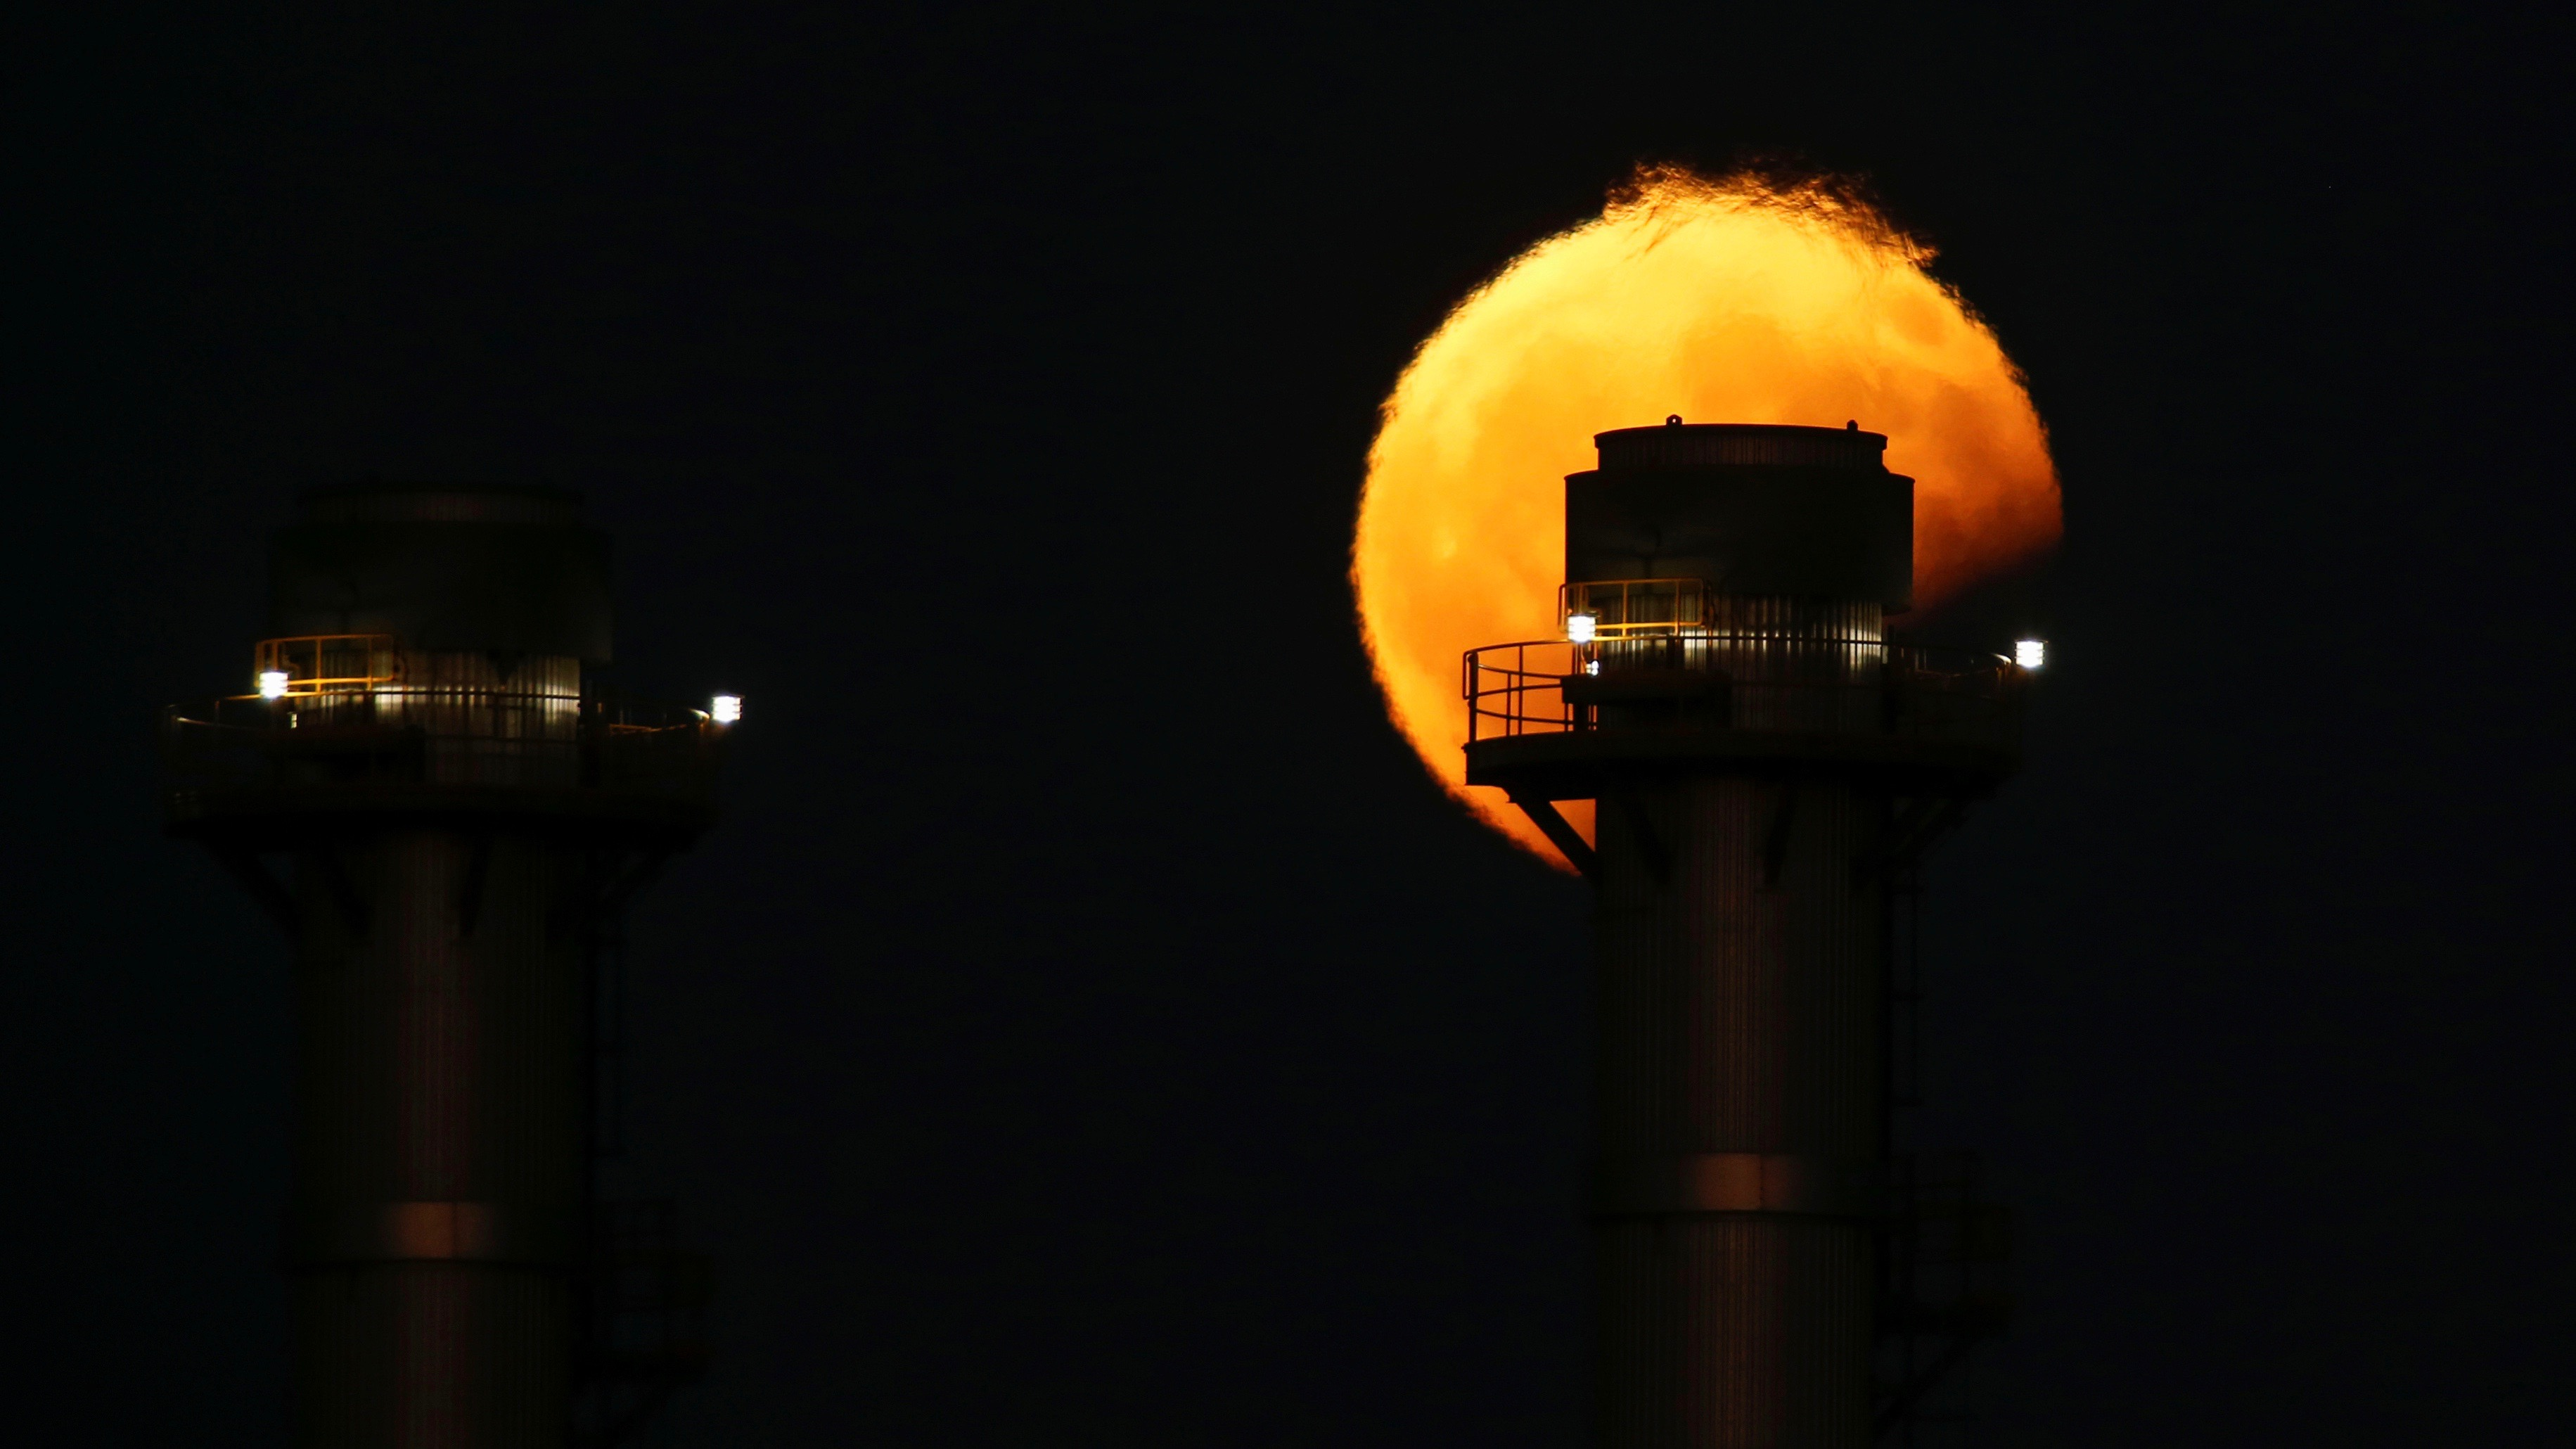 Moon rising by day behind a power plant.